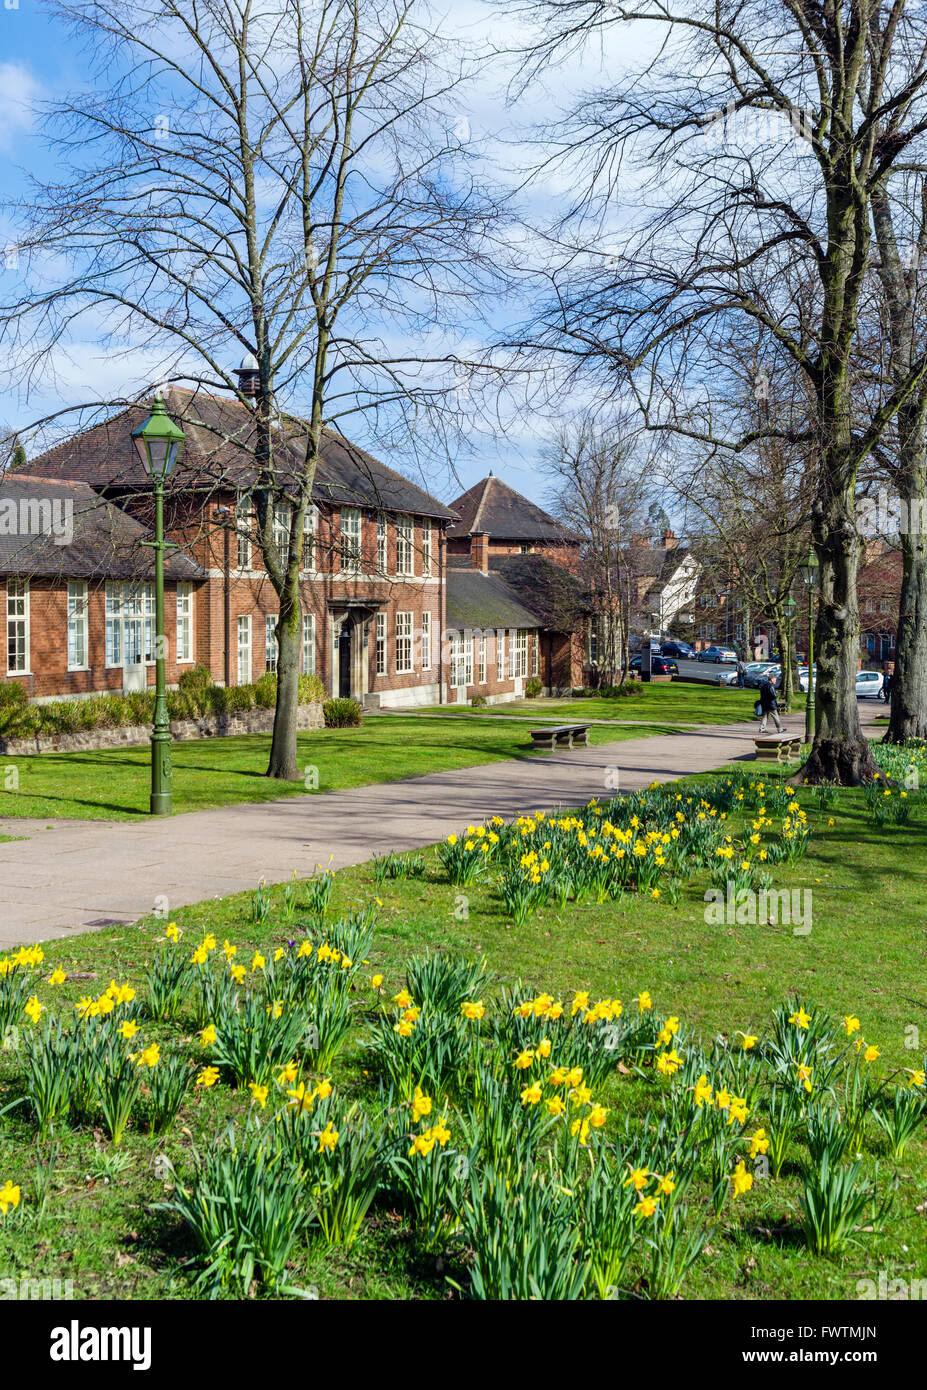 Bournville Village Green with the Day Continuation School on the left, Bournville, Birmingham, West Midlands, UK - Stock Image